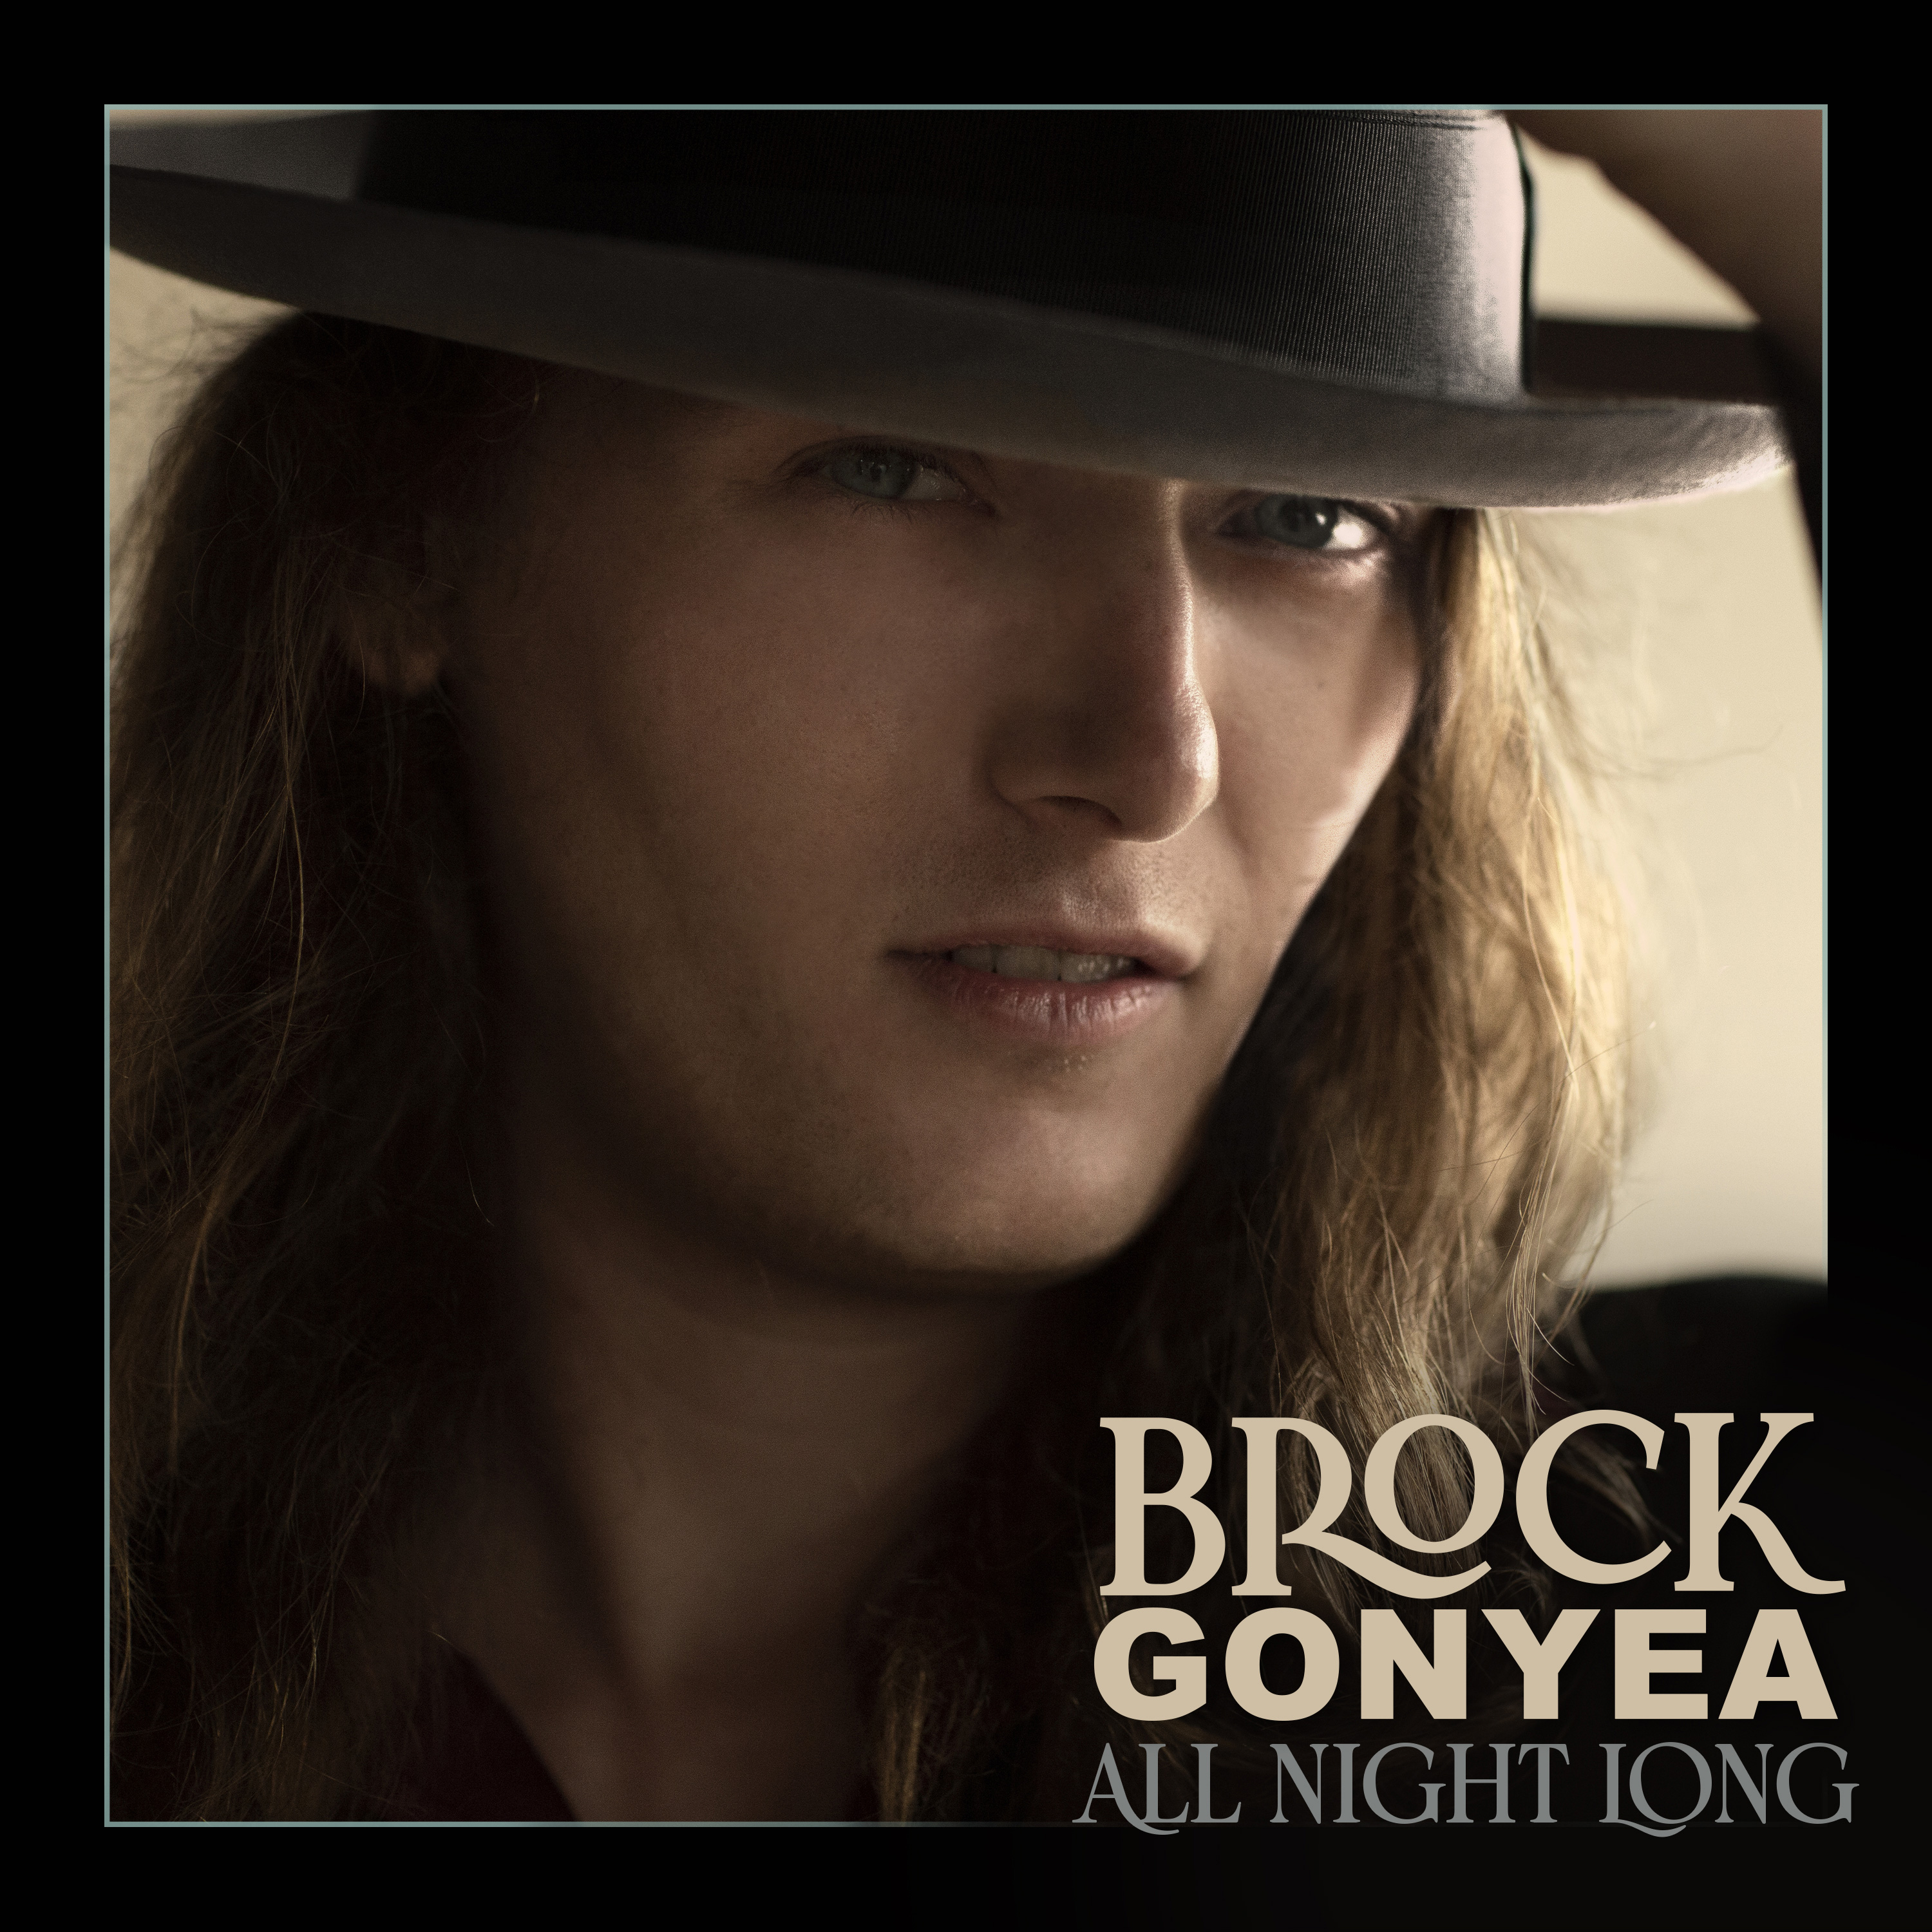 Brock Gonyea 'All Night Long' cover